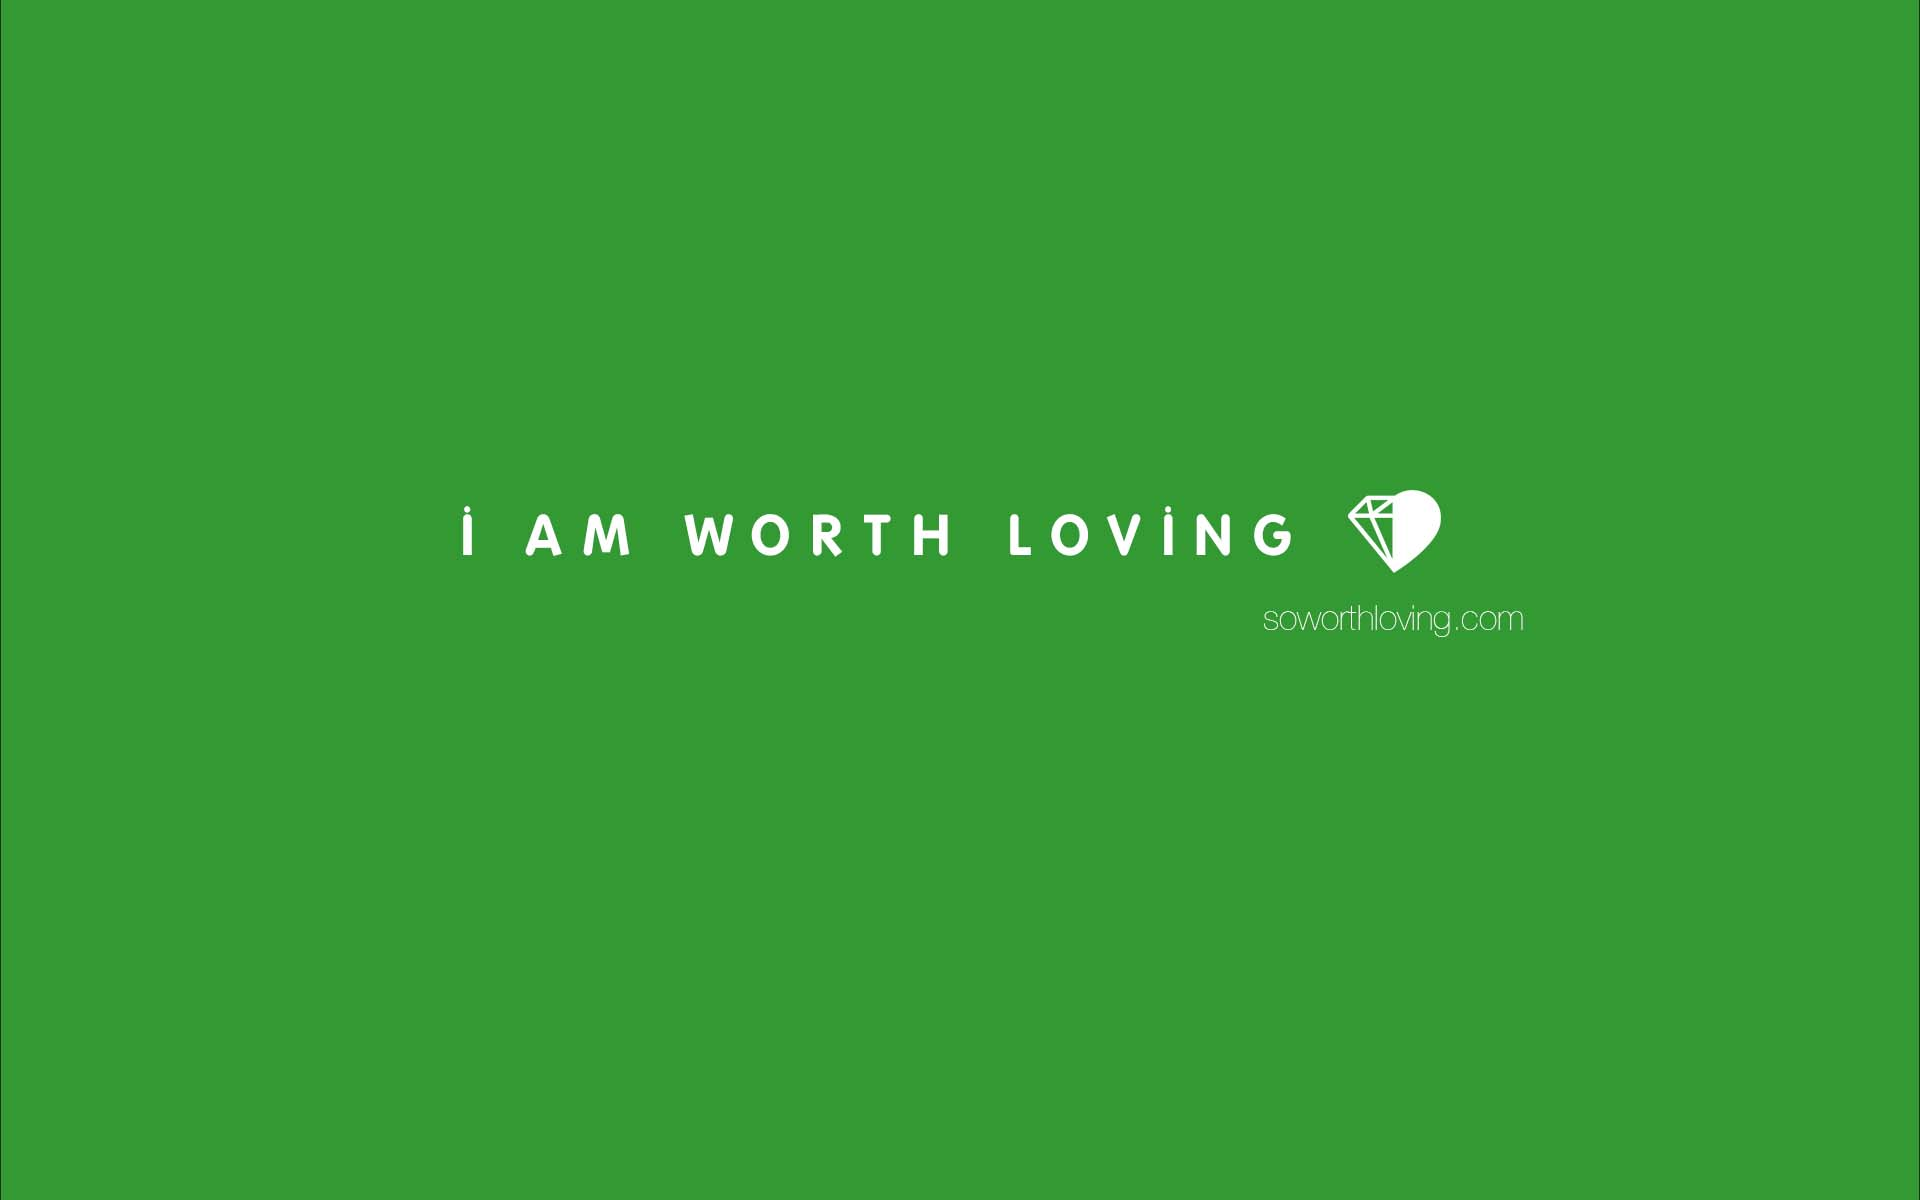 I Am Worth Loving Wallpaper